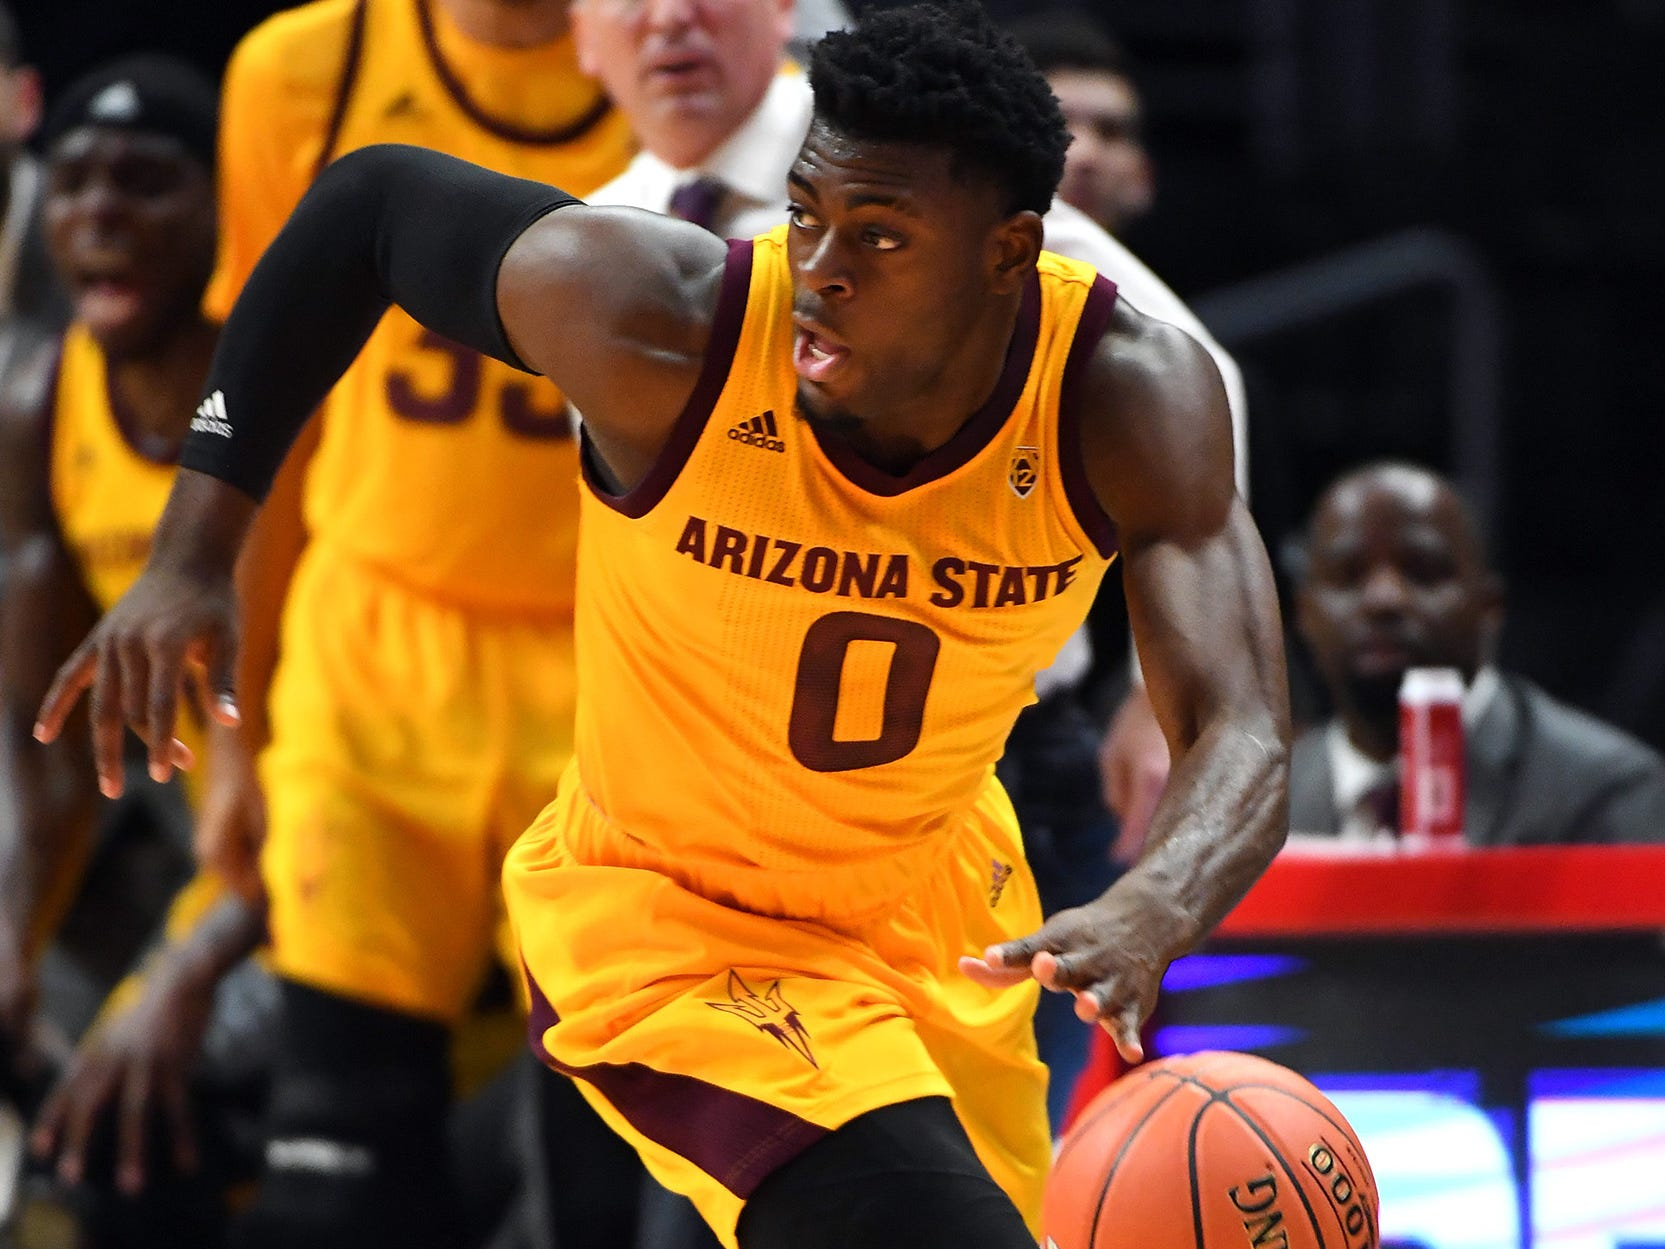 Dec 7, 2018; Los Angeles, CA, USA;  Arizona State Sun Devils forward Taeshon Cherry (35) and head coach Bobby Hurley watch from the bench as guard Luguentz Dort (0) steals the ball and takes it down court in the first half of the game against the Nevada Wolf Pack at Staples Center. Mandatory Credit: Jayne Kamin-Oncea-USA TODAY Sports